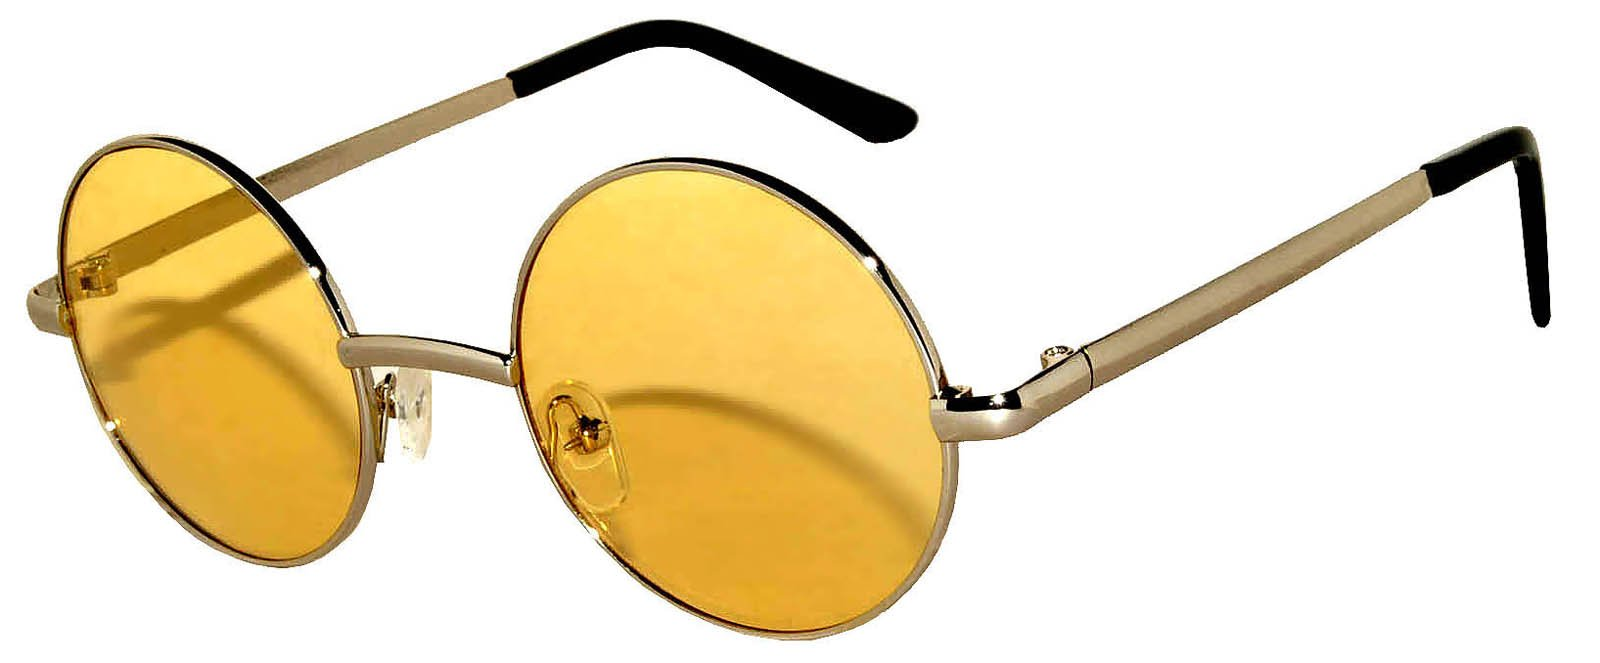 Round Retro Vintage Circle Style Tint Sunglasses Metal Silver Yellow Lens 43mm by OWL (Image #1)